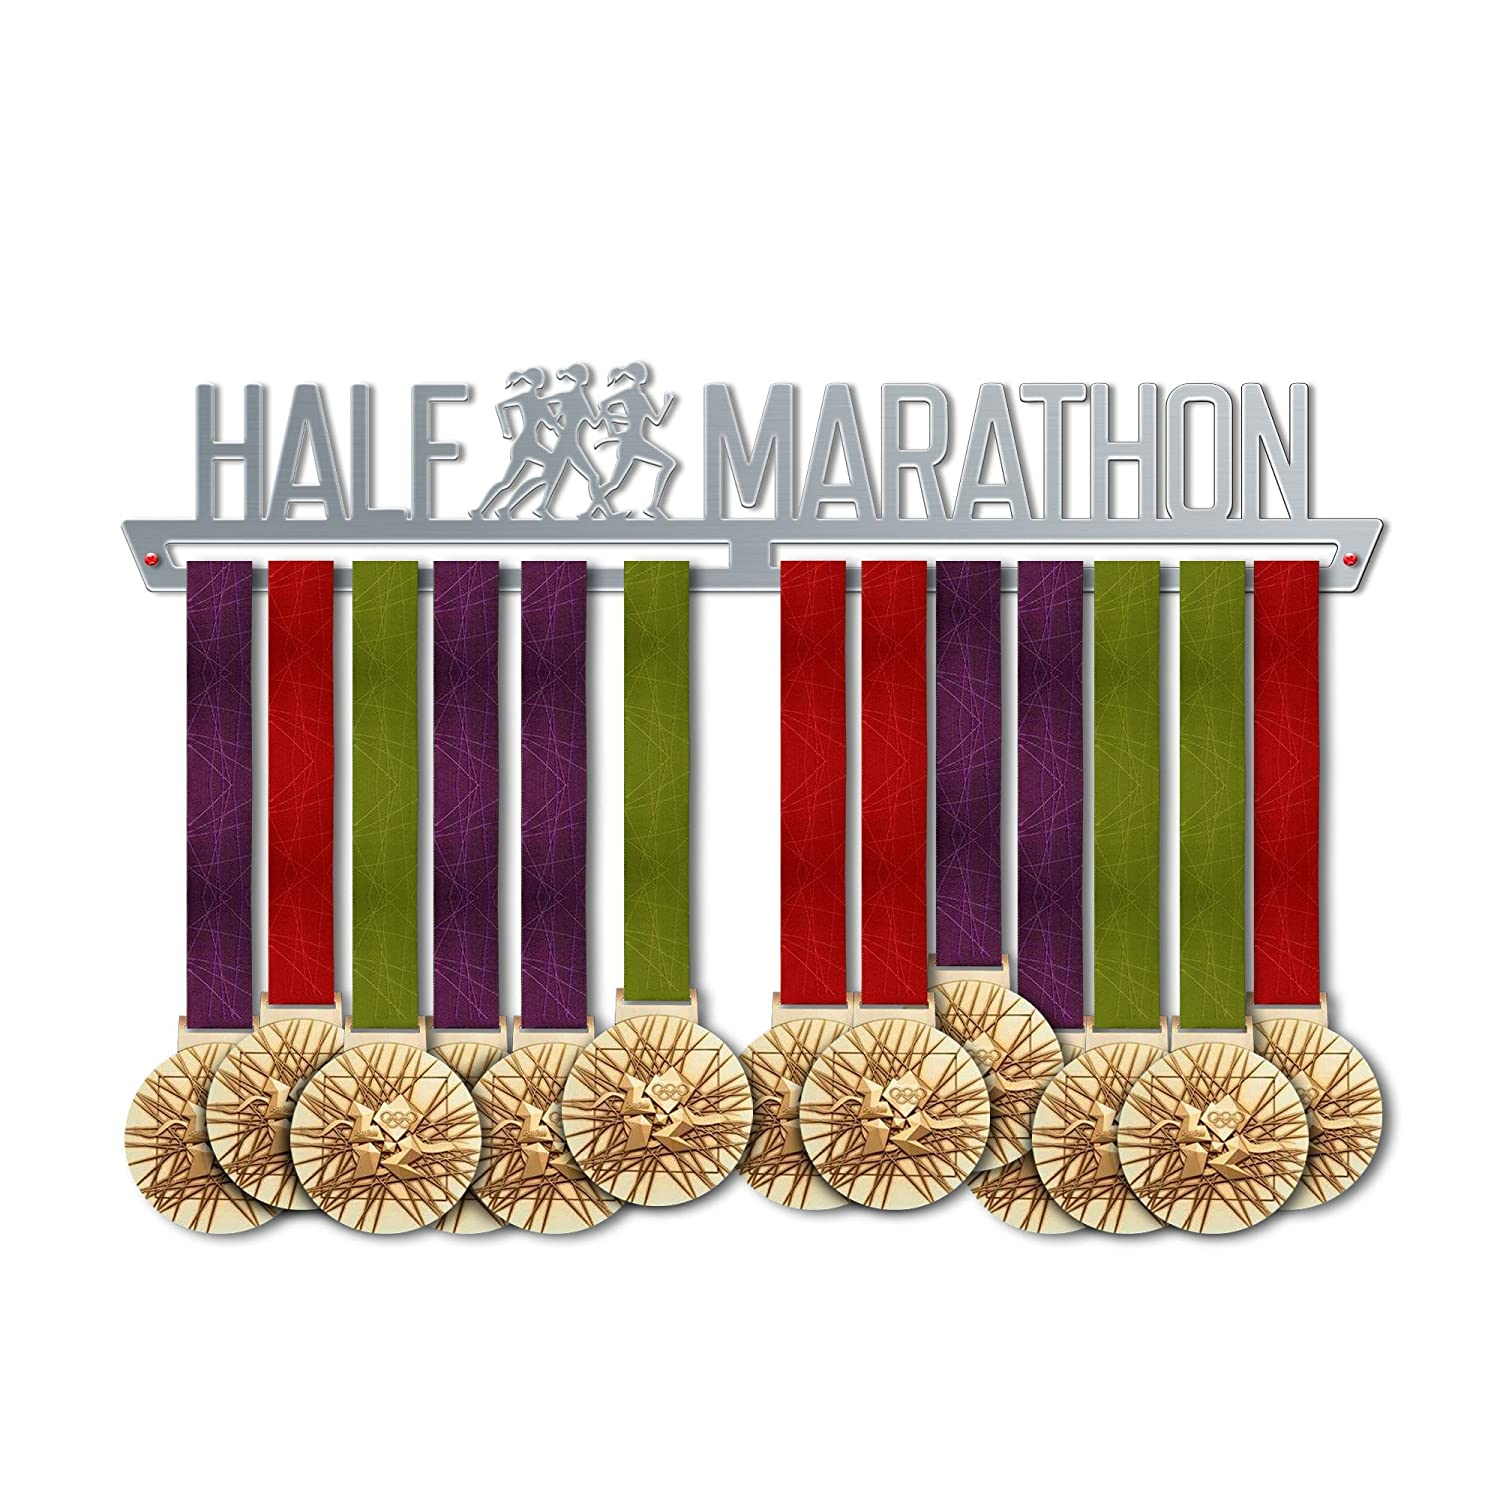 Half Marathon Medal Hanger Display | Sports Medal Hangers | Stainless Steel Medal Display | by VictoryHangers - The Best Gift for Champions !